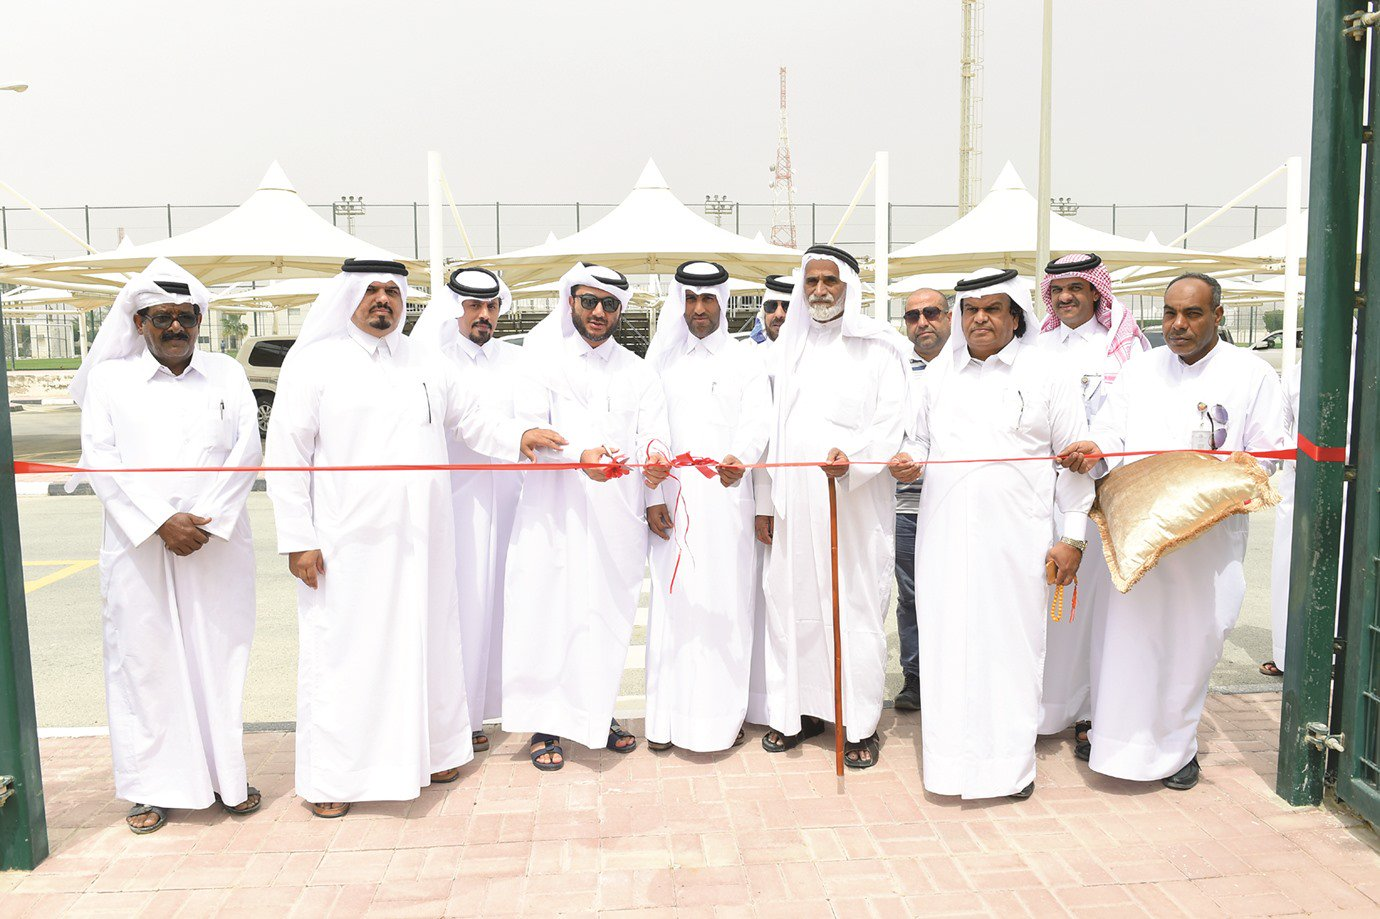 New park opens in Al Shahaniya with mini zoo